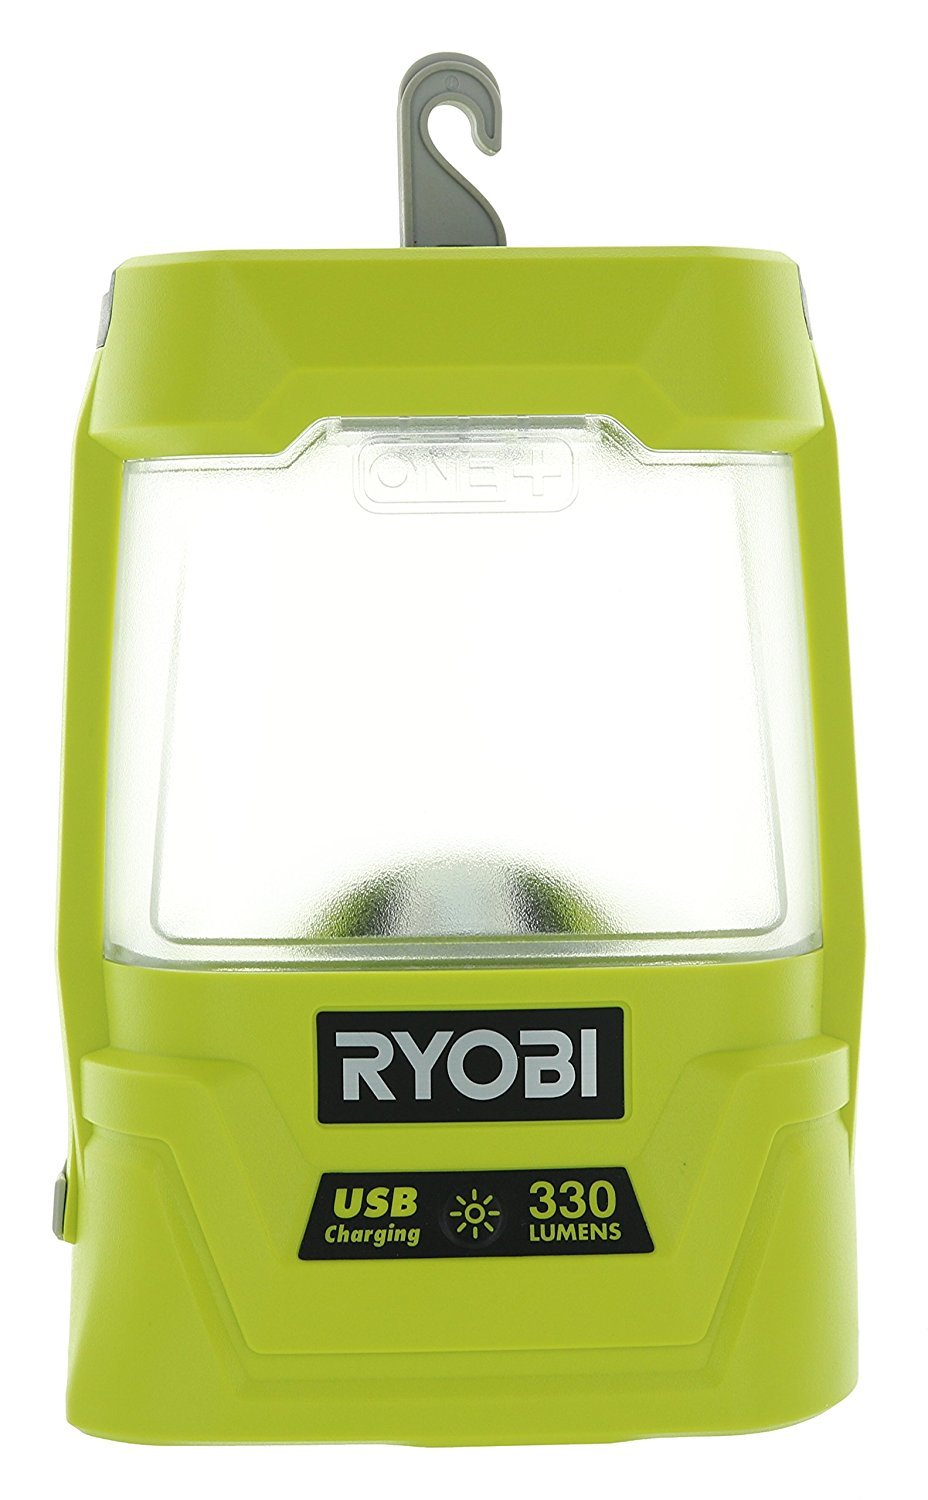 Battery and Charger Not Included Hexity  Ryobi P704 ,Hexity v20 2 Pack 18v One+ Lithium Ion Work Light